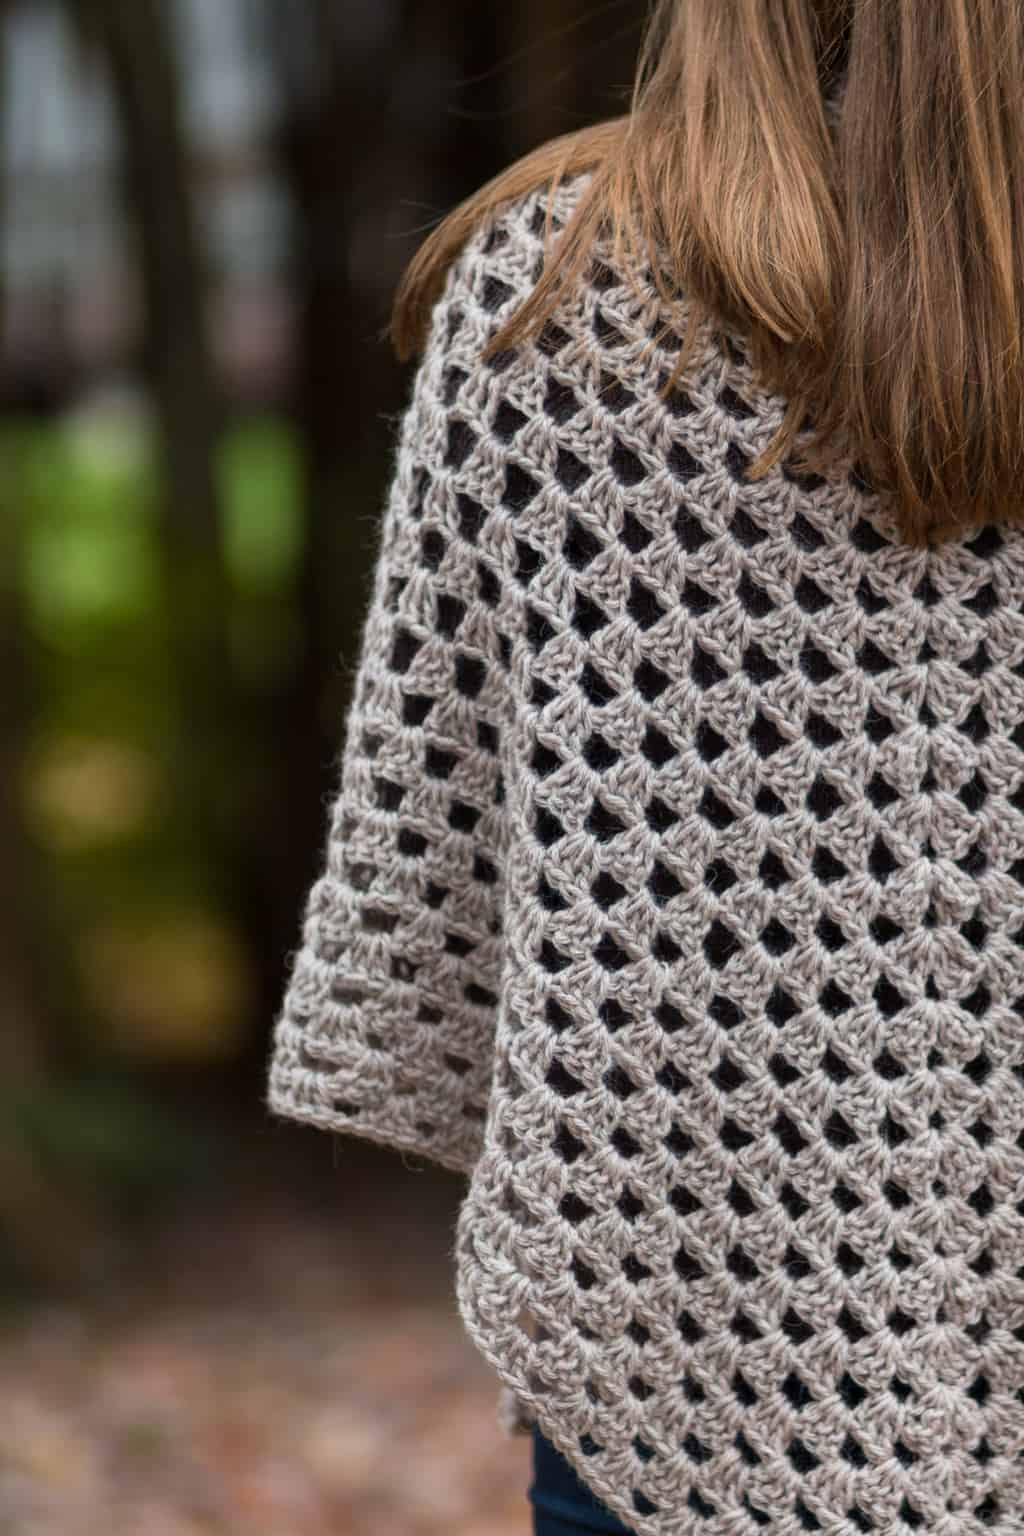 Stitches of a Granny Crochet Shawl Pattern